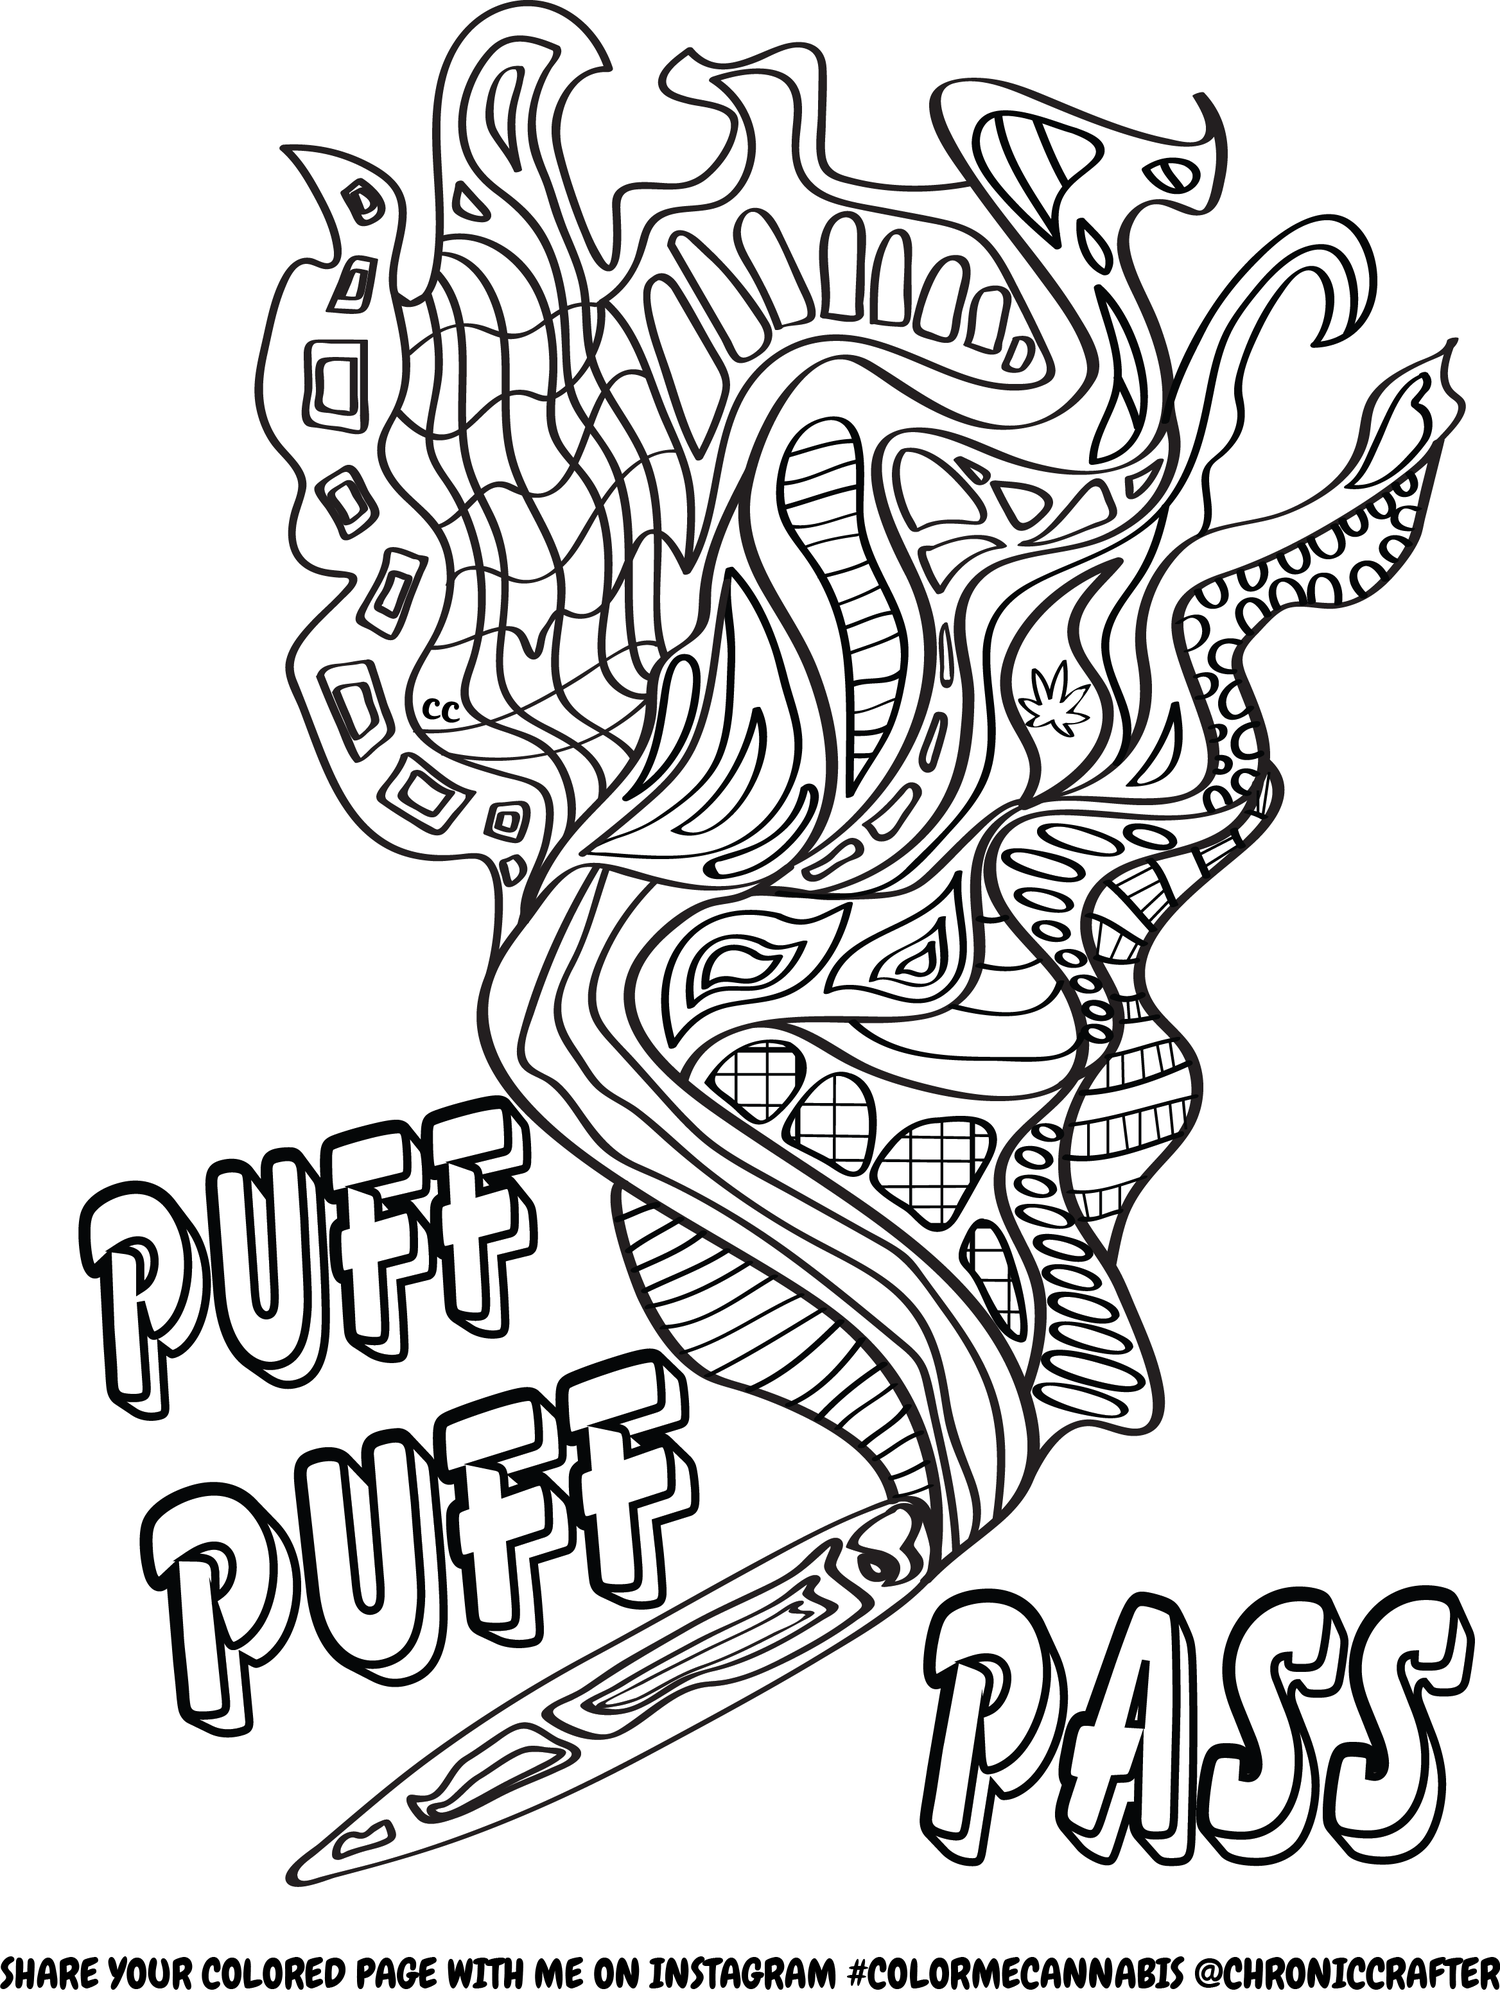 photograph regarding Printable Stoner Coloring Pages identify No cost Stoner Coloring Web page versus Continual Crafter Drugz